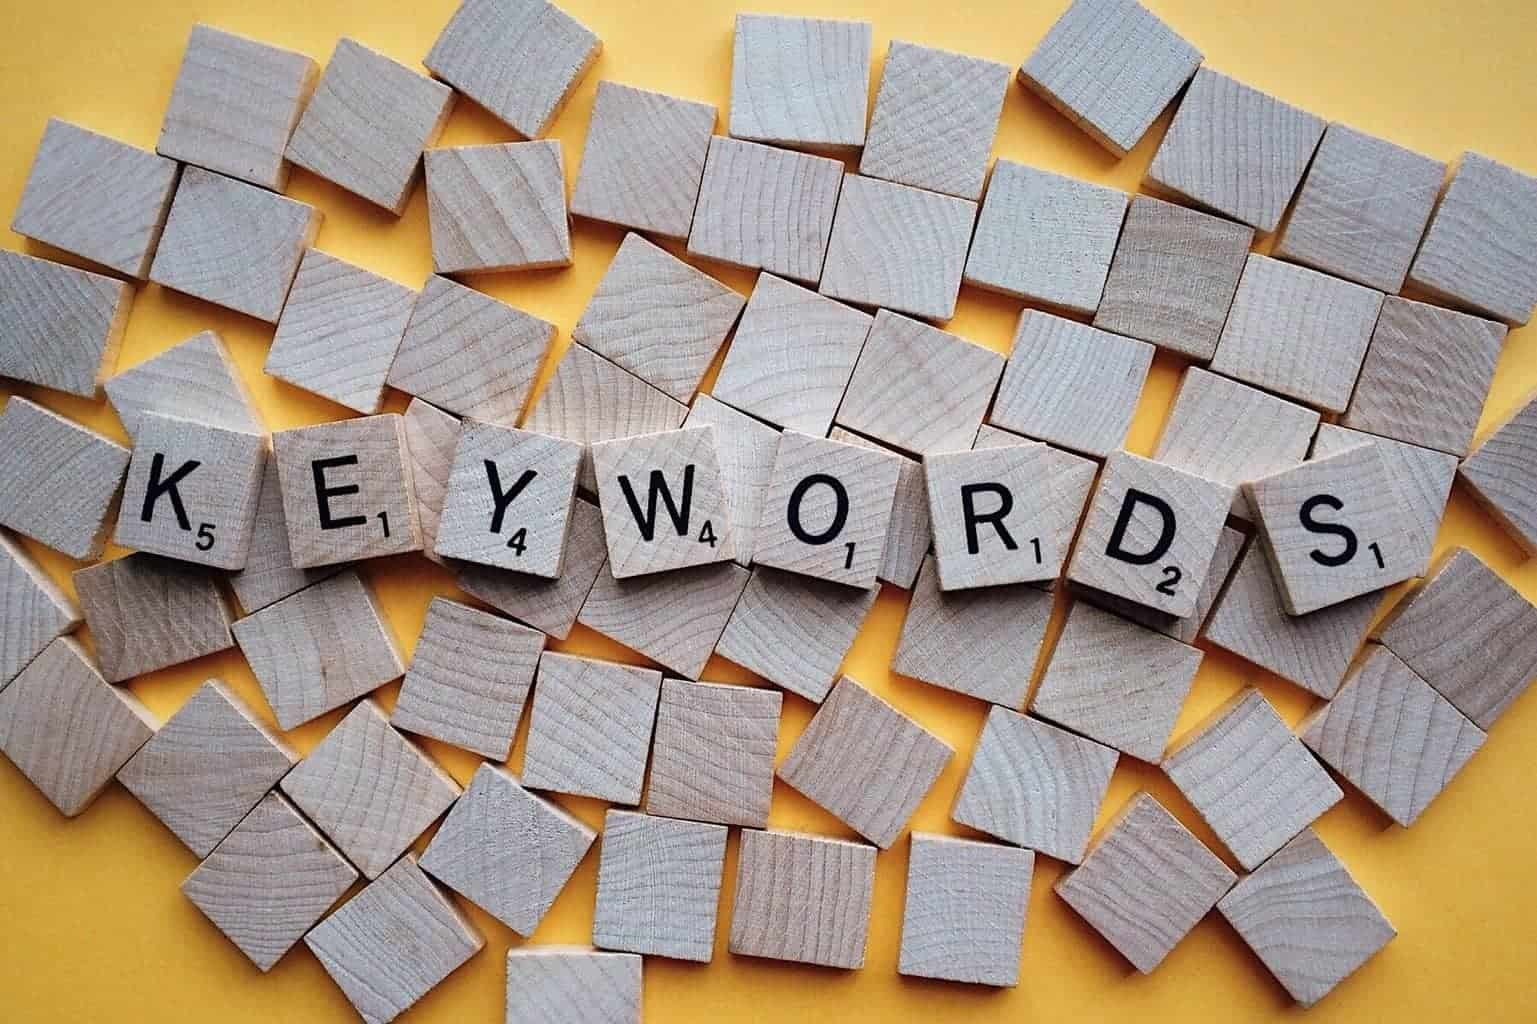 Using the right keywords is essential in SEO